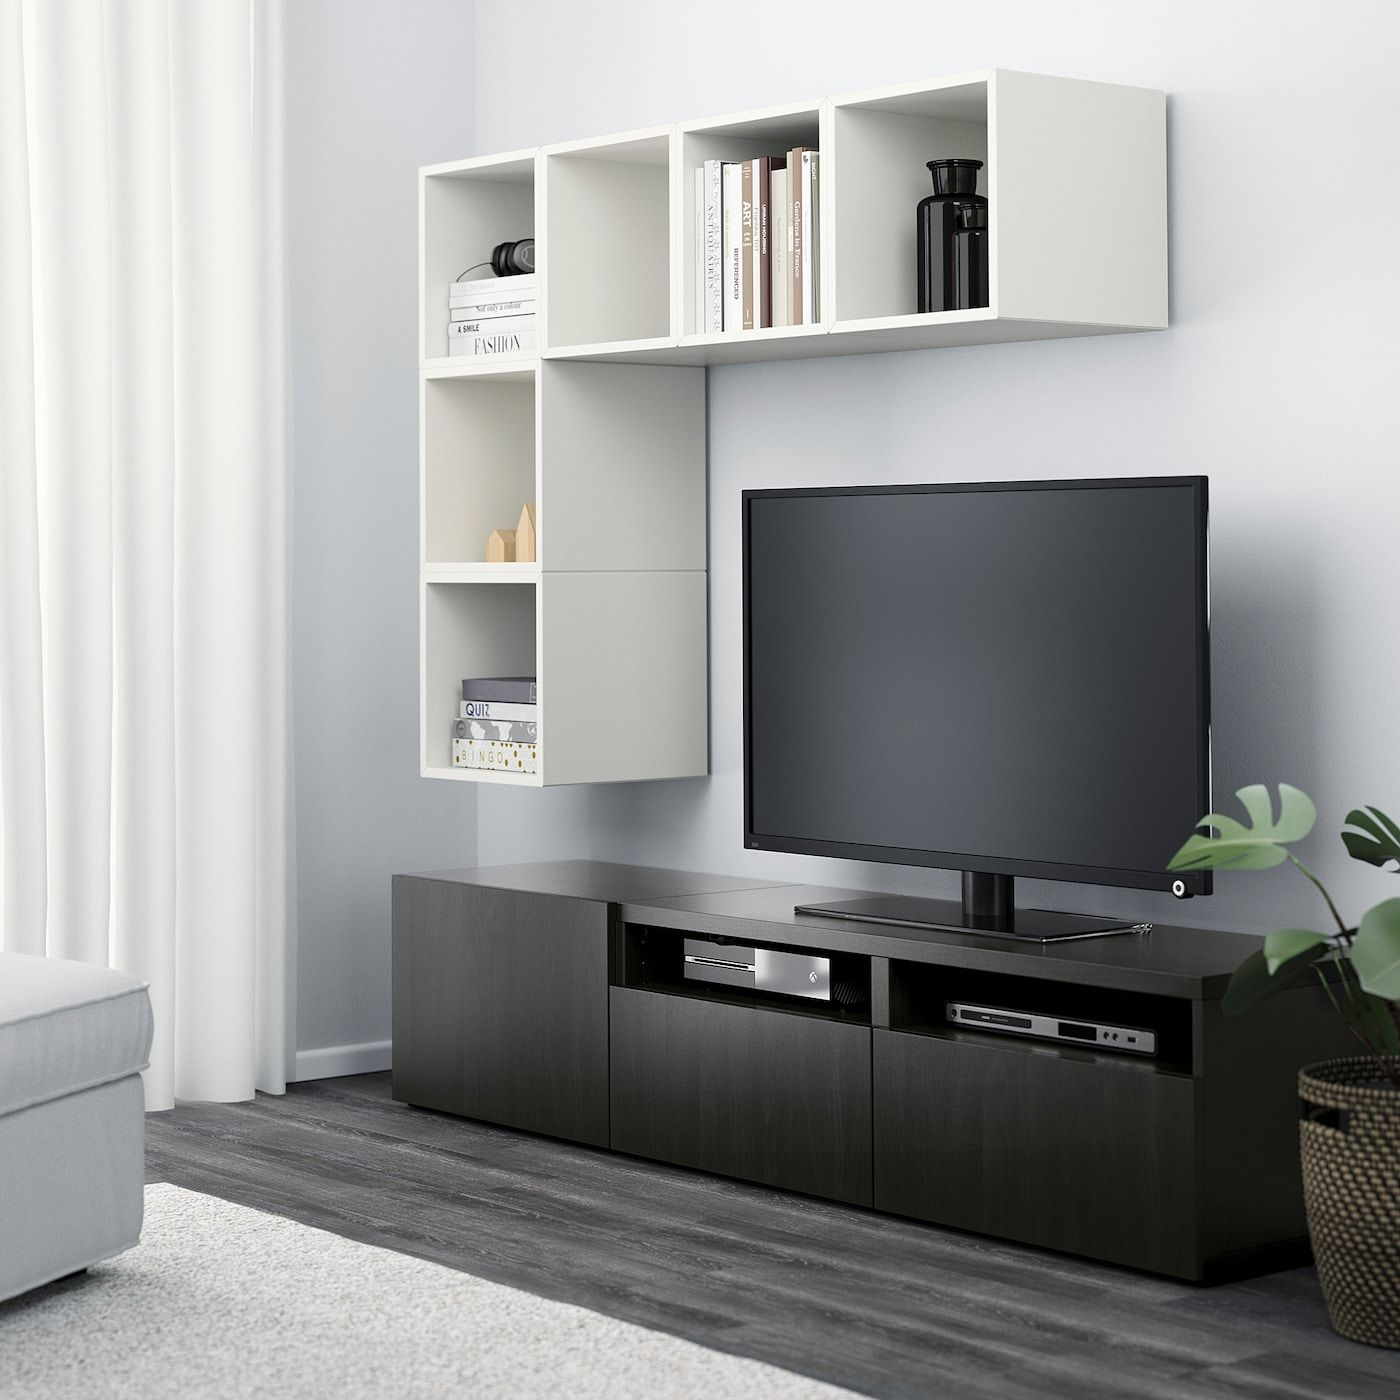 41+ Ikea 70 inch tv stand ideas in 2021